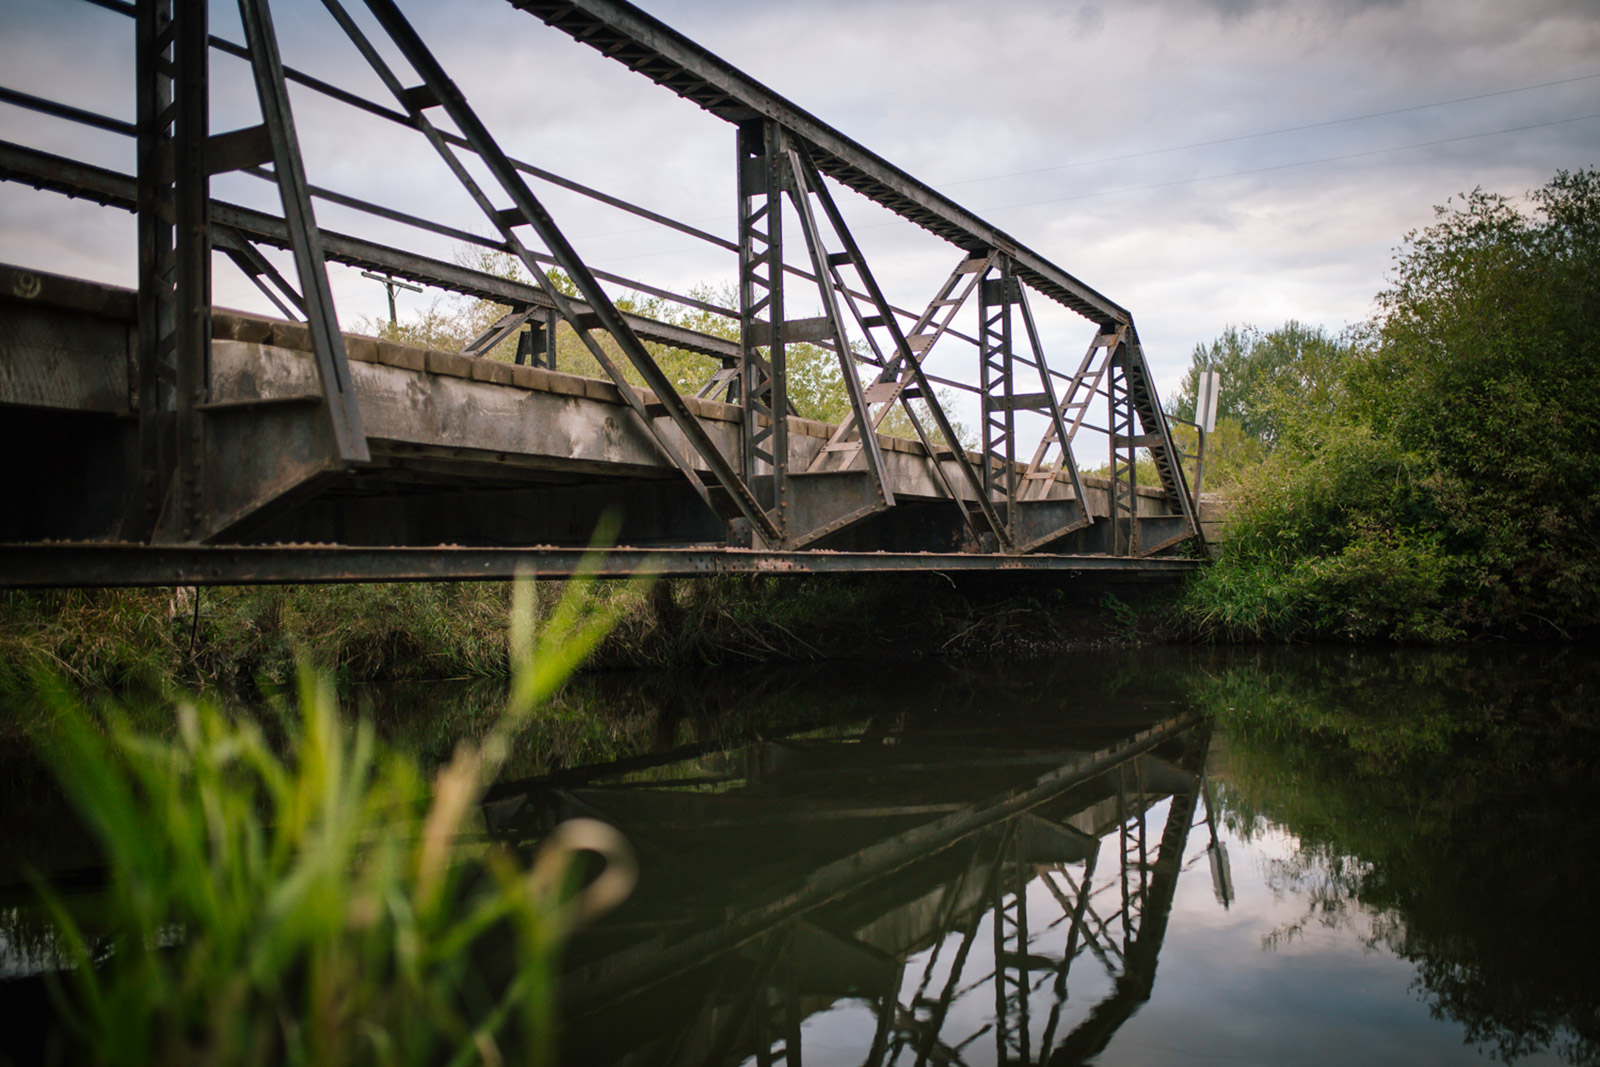 A picture of a bridge on the East Gallatin River in this Montana photography session.